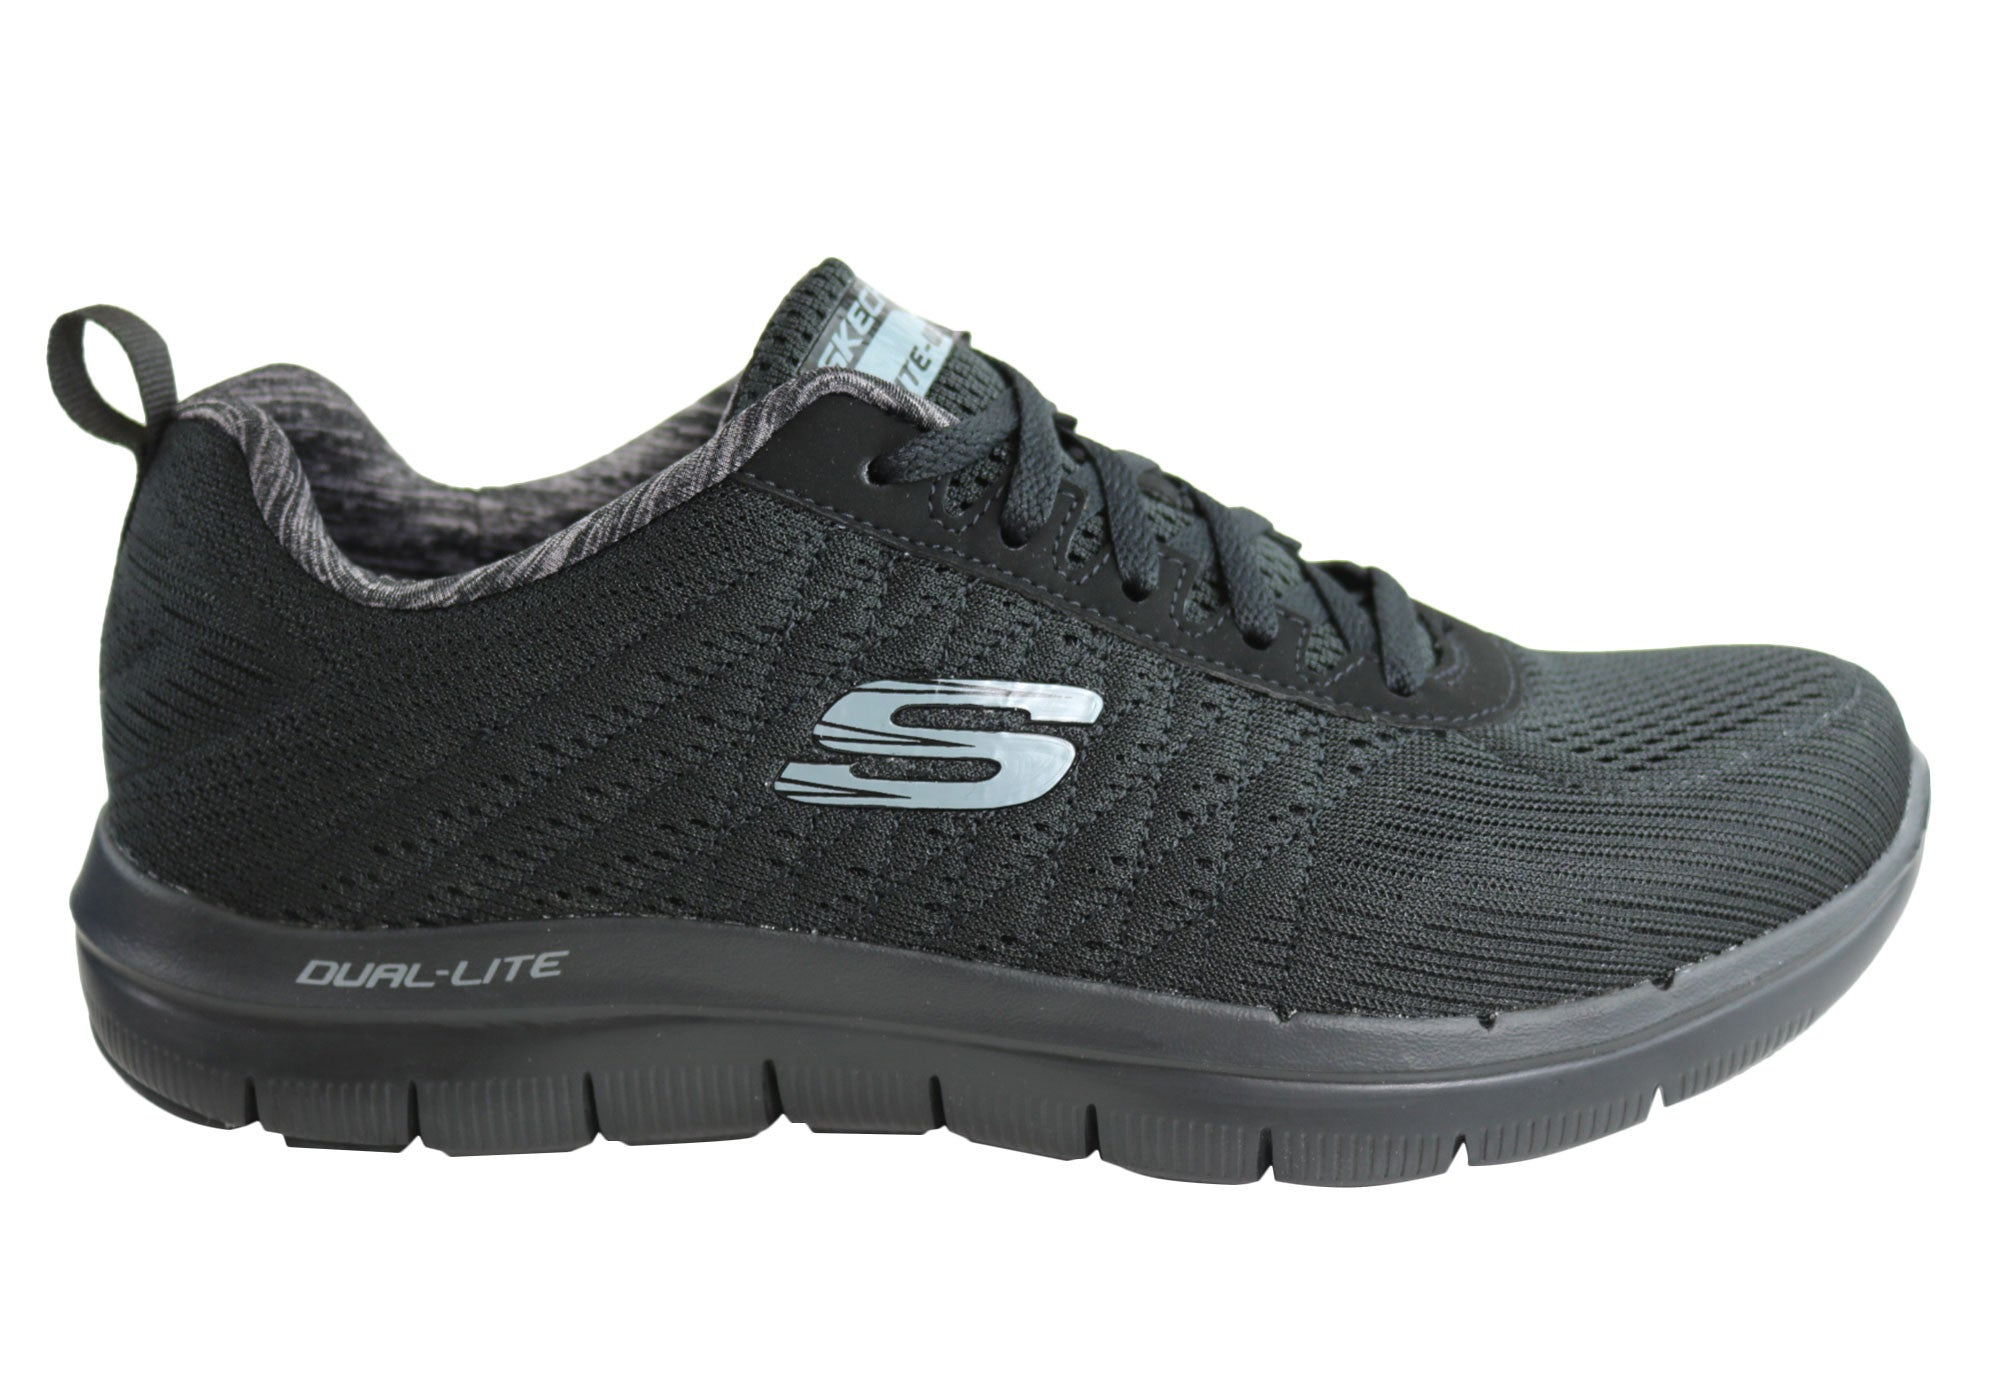 b975890cff73 Home Skechers Mens Flex Advantage 2.0 The Happs Memory Foam Sneakers. Black  ...